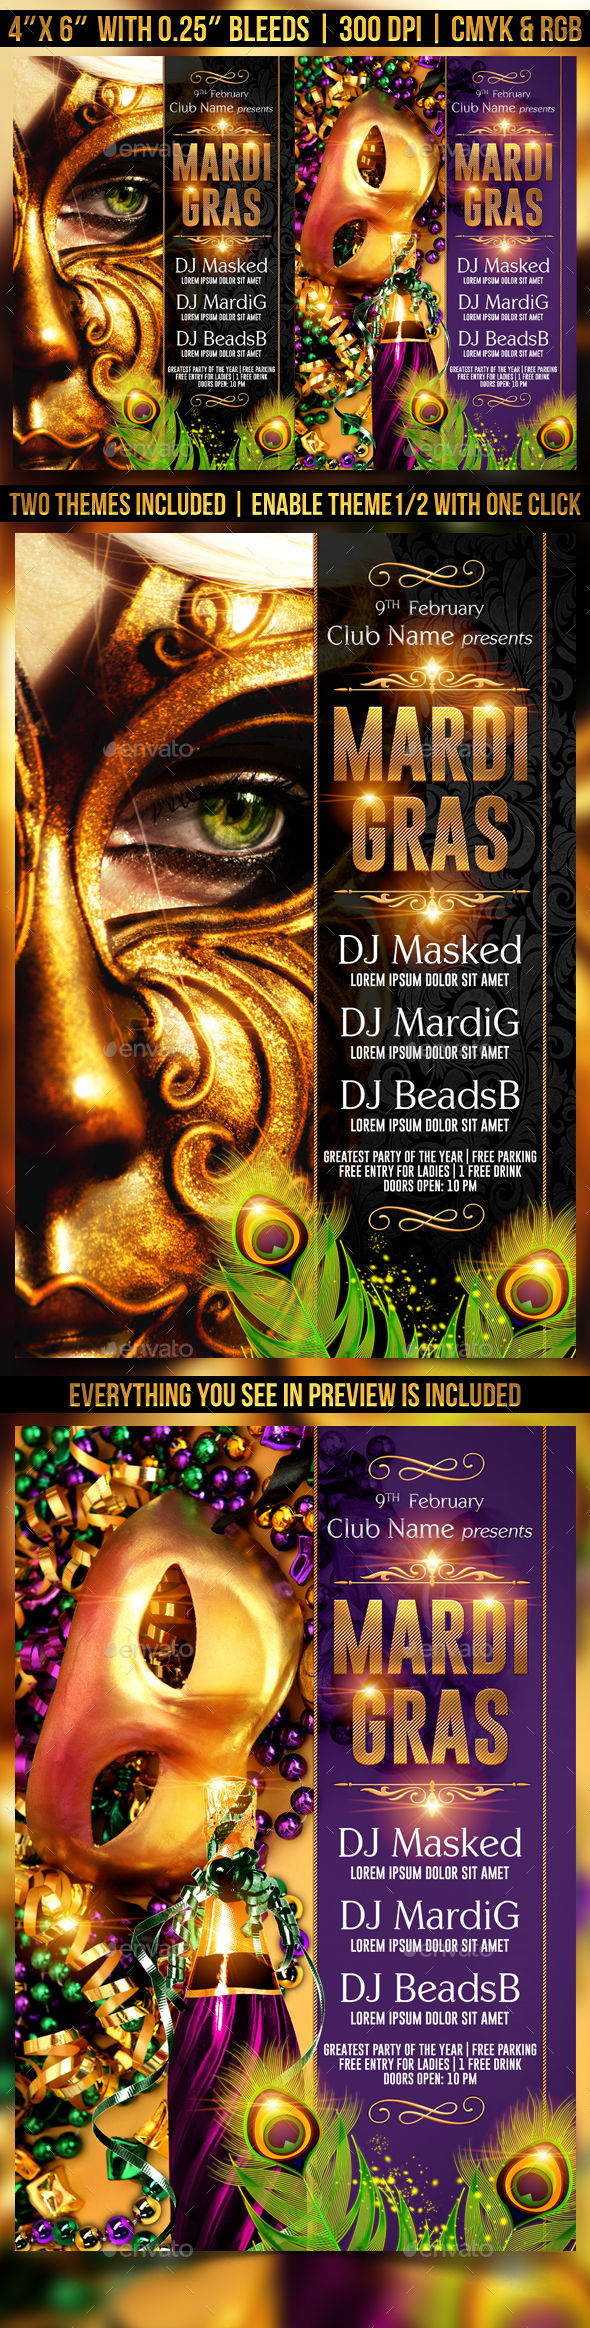 Mardi Gras Or Masquerade Flyer Template by Gugulanul (Halloween party flyer)